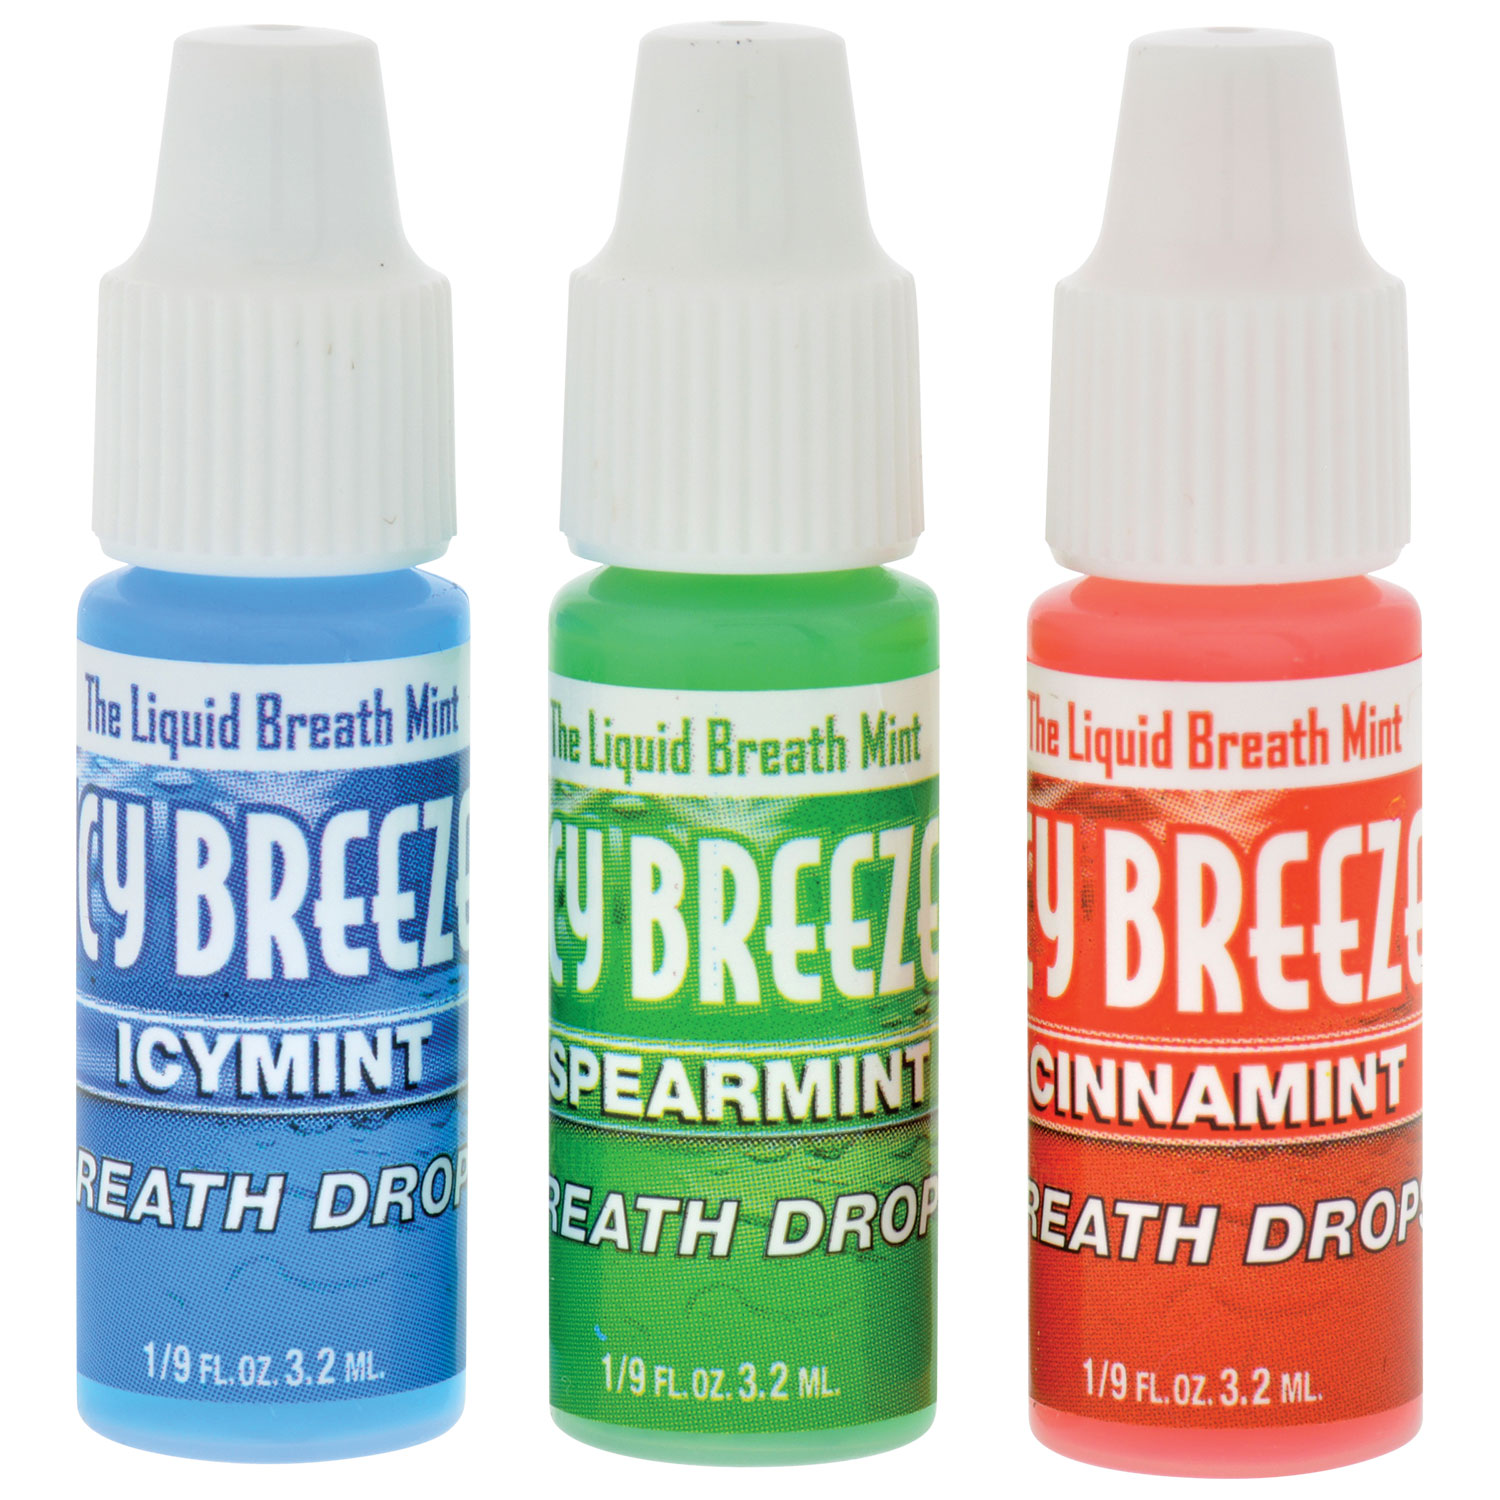 Pick-one-Icy-Breeze-Instant-Fresh-Breath-Drops-or-Sprays-Mouthwash thumbnail 3